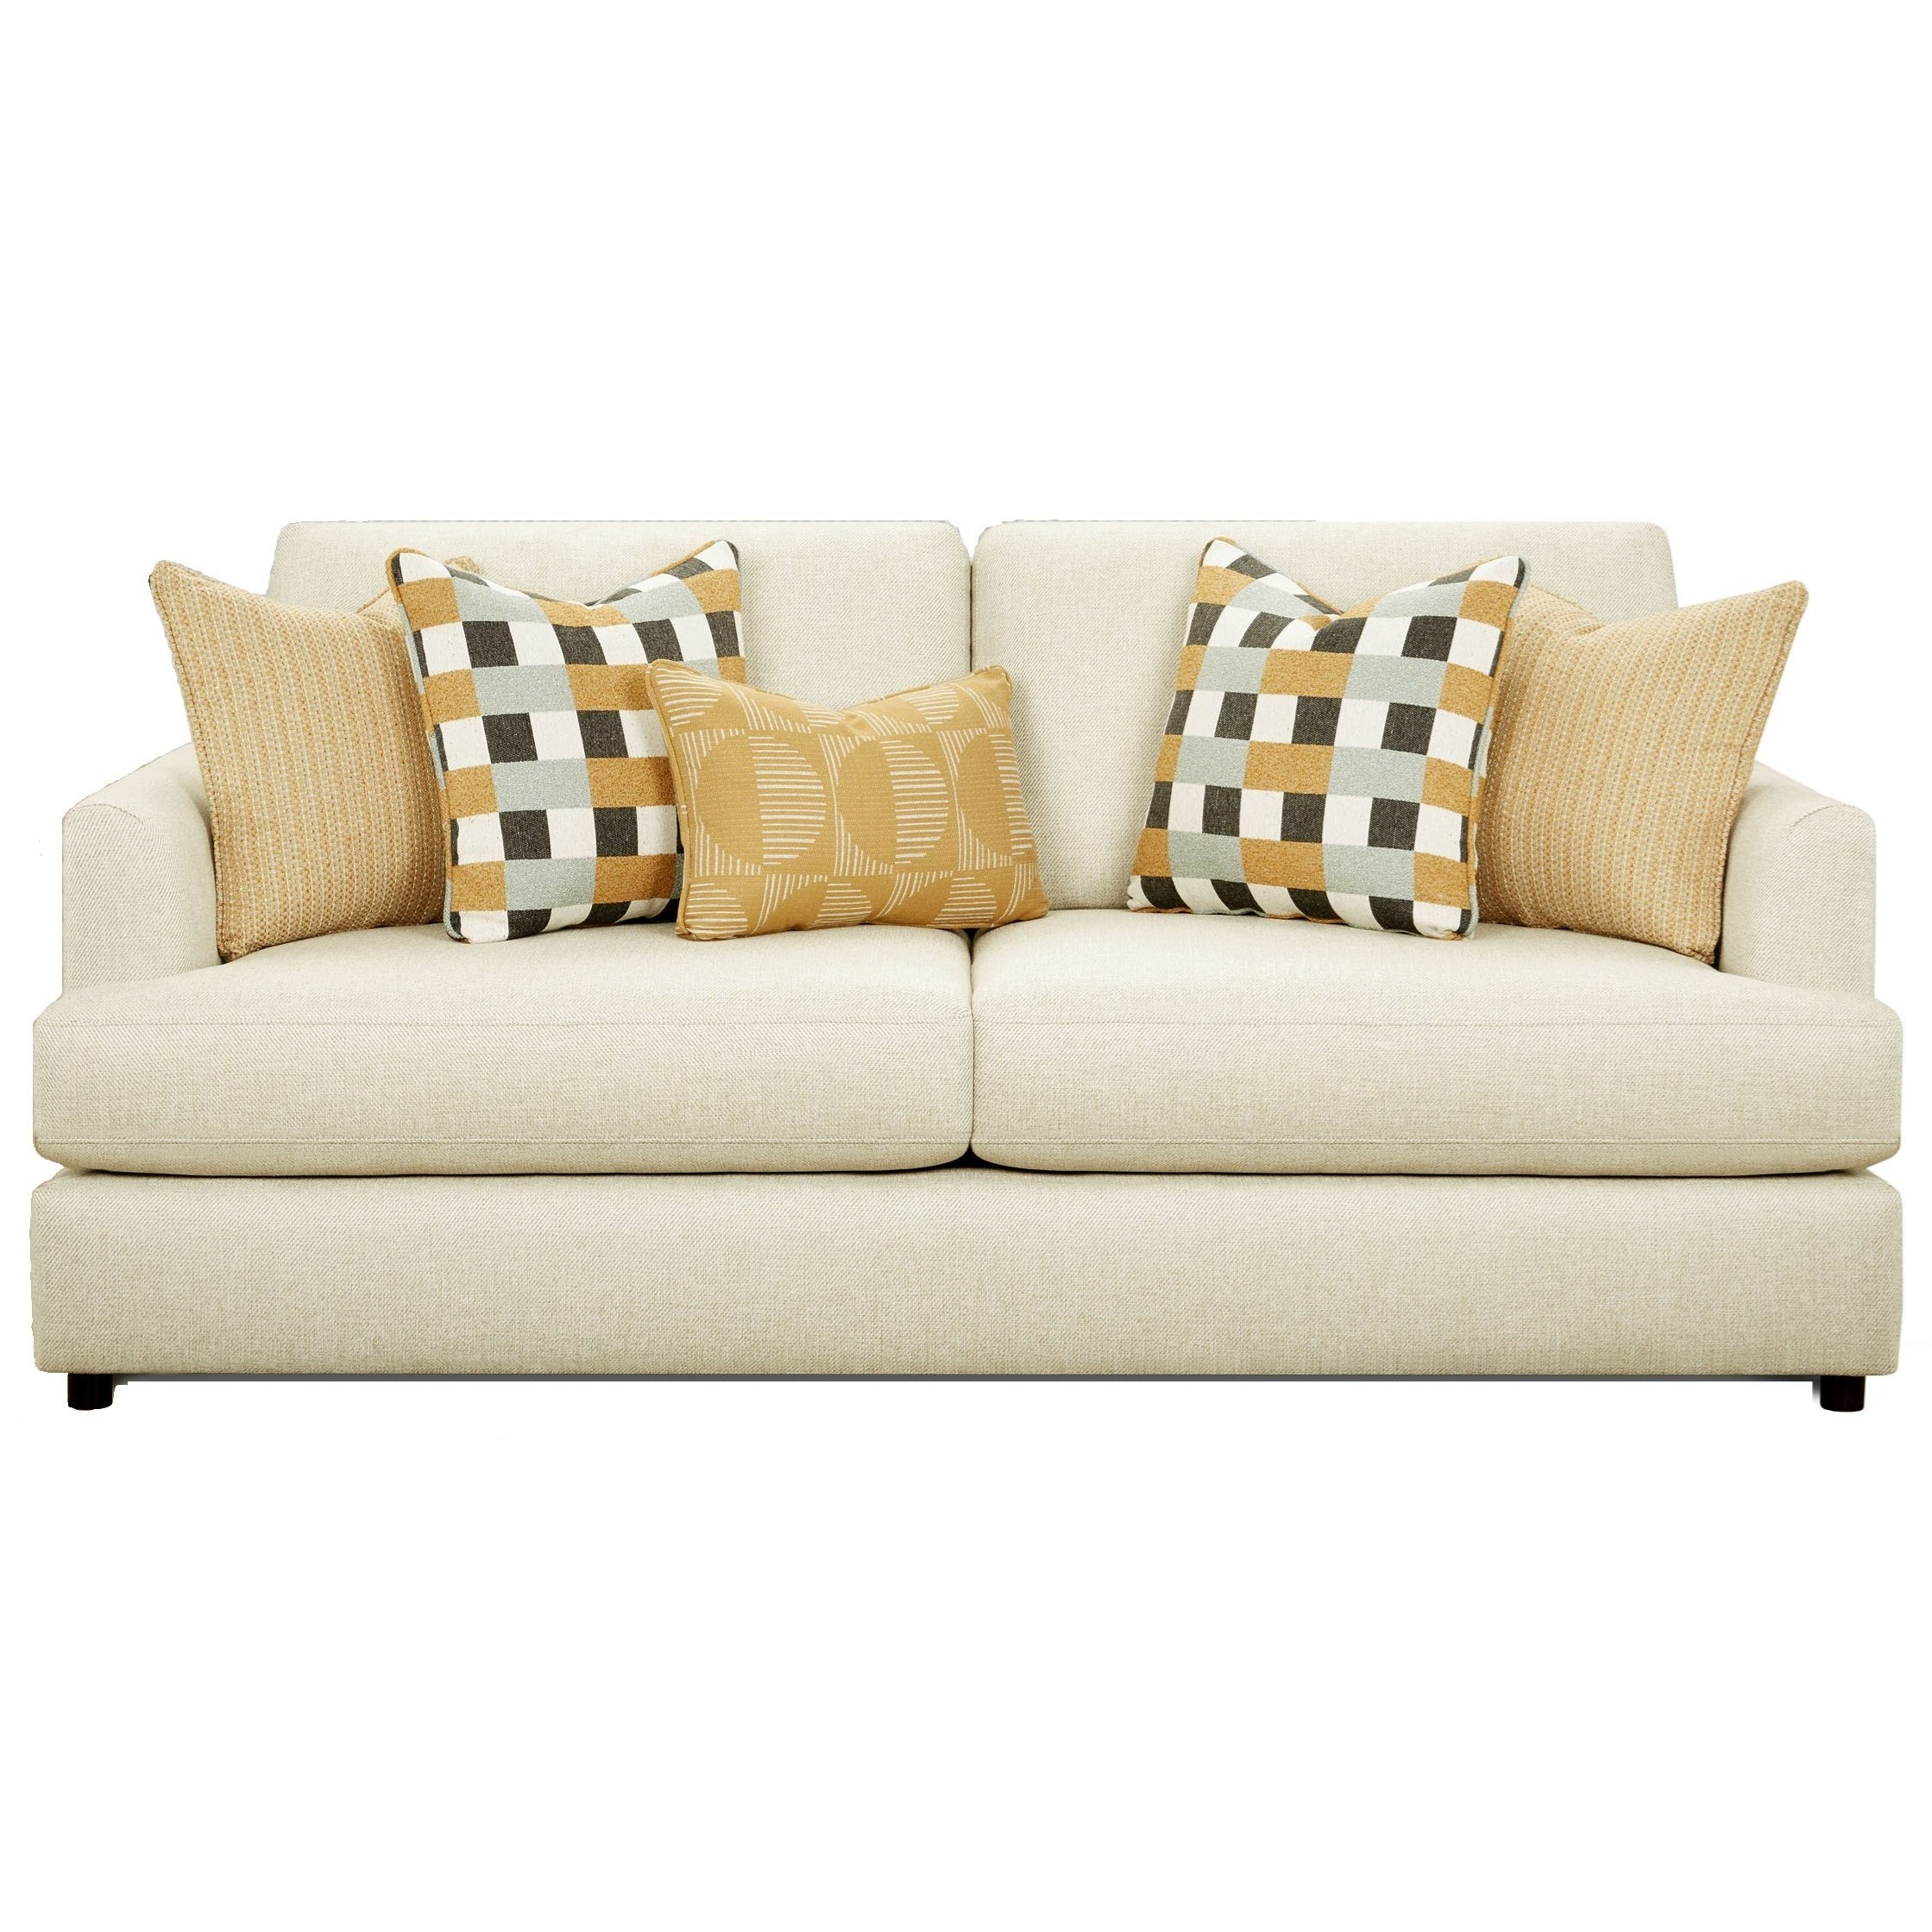 23-00 Sofa by FN at Lindy's Furniture Company